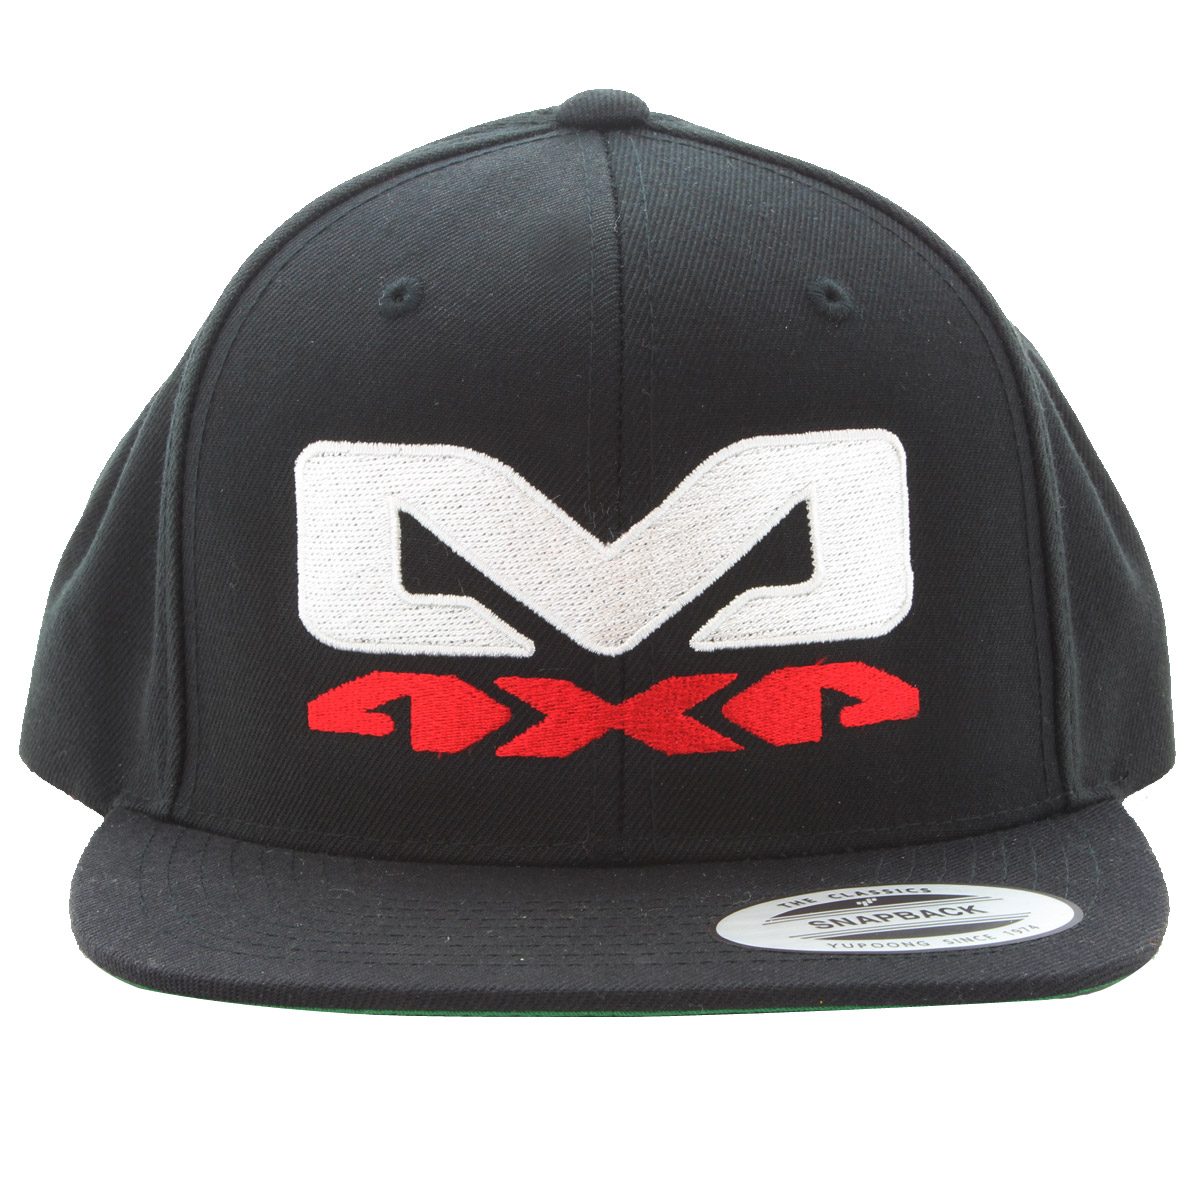 Morris 4X4 Adjustable Snapback Cap, Flat Bill, Black, Green